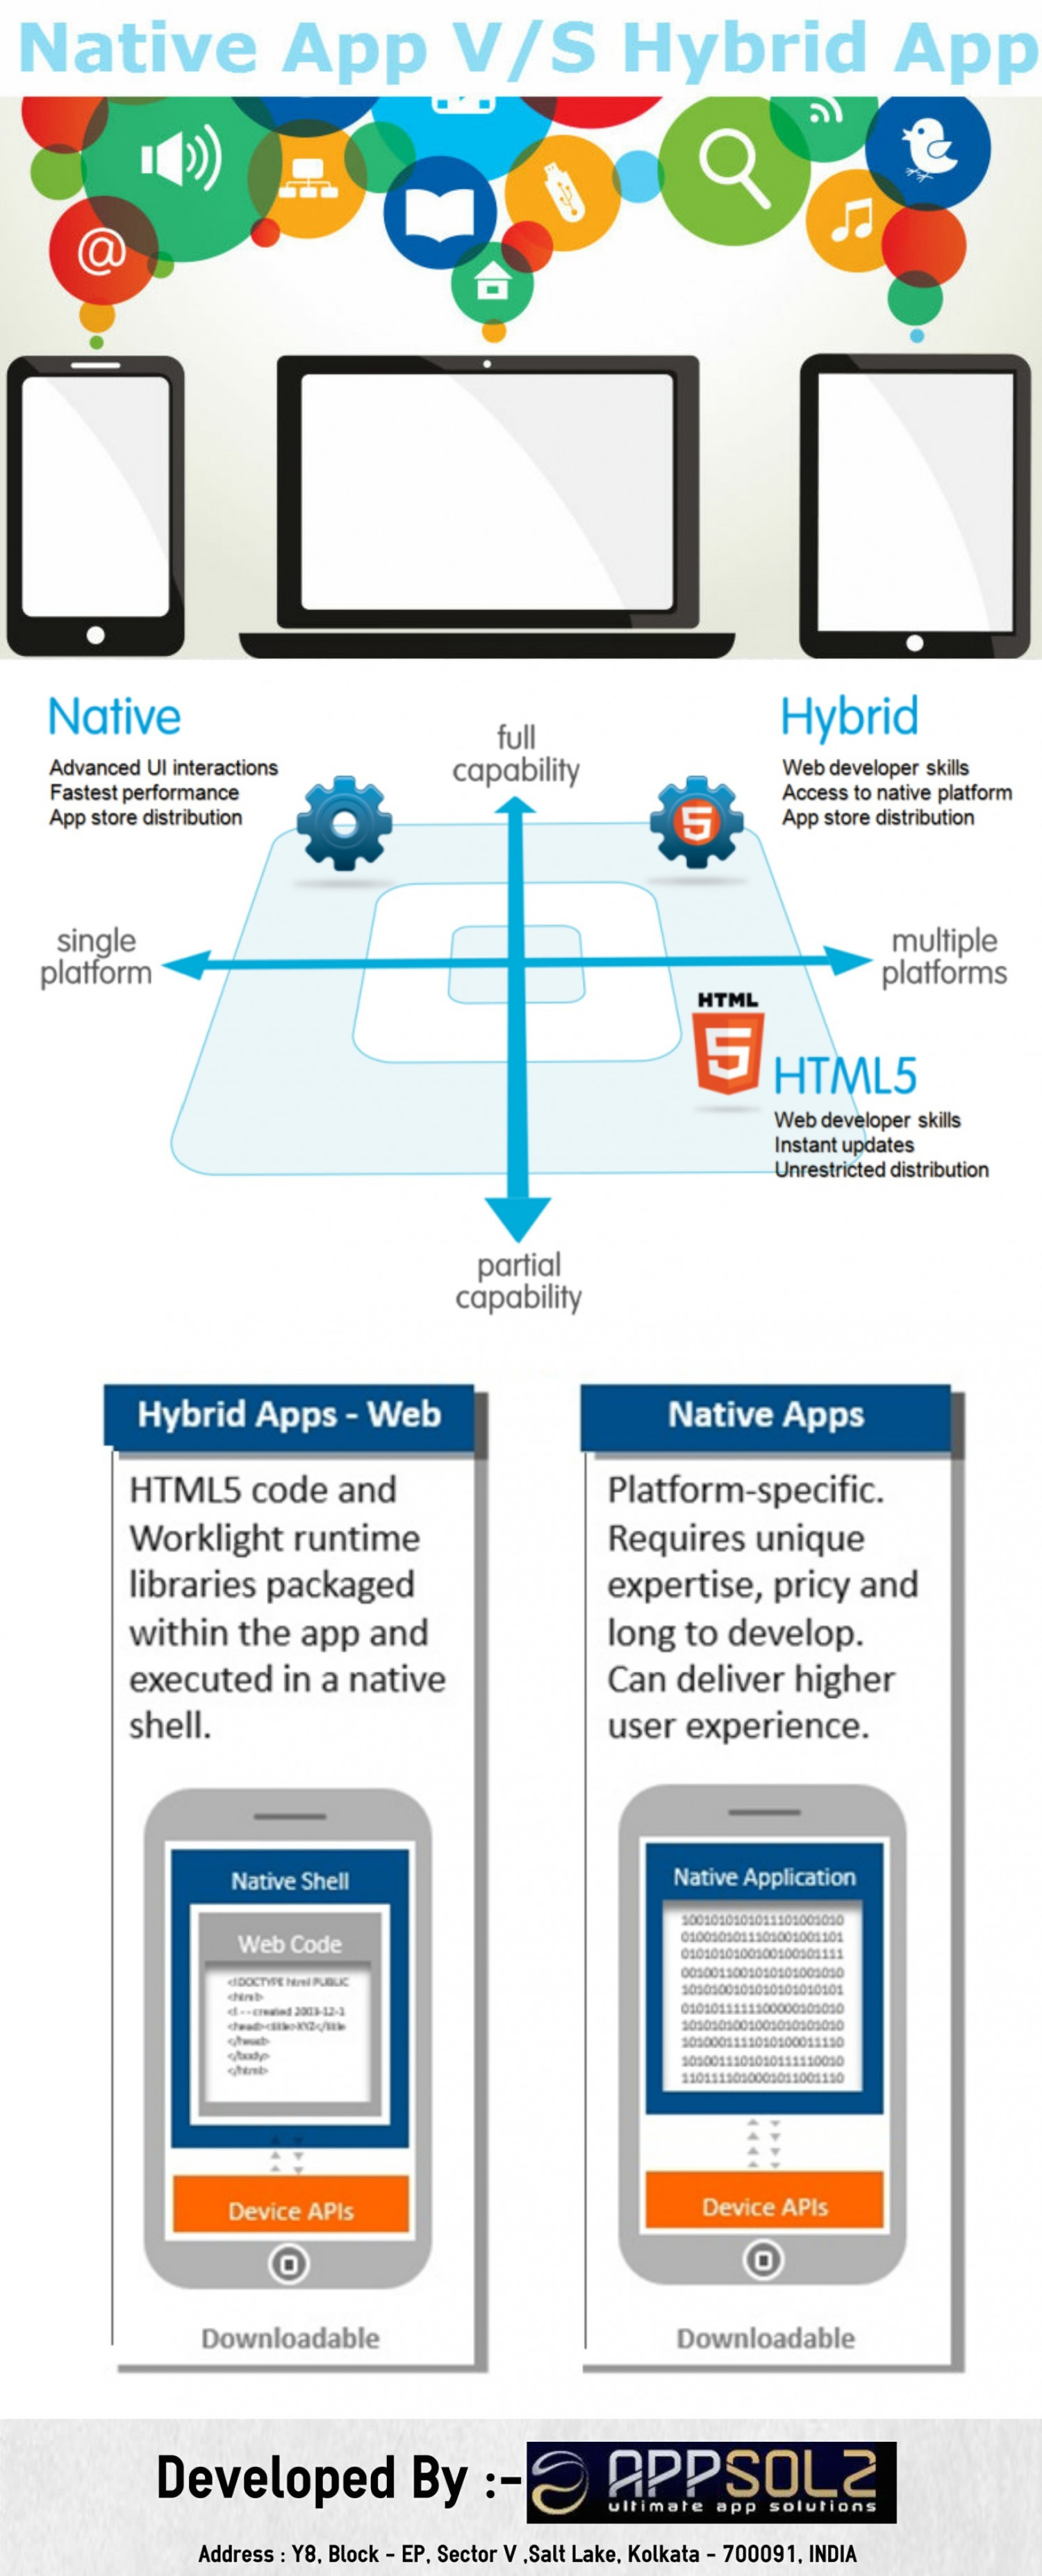 Native App Vs Hybrid App Infographic